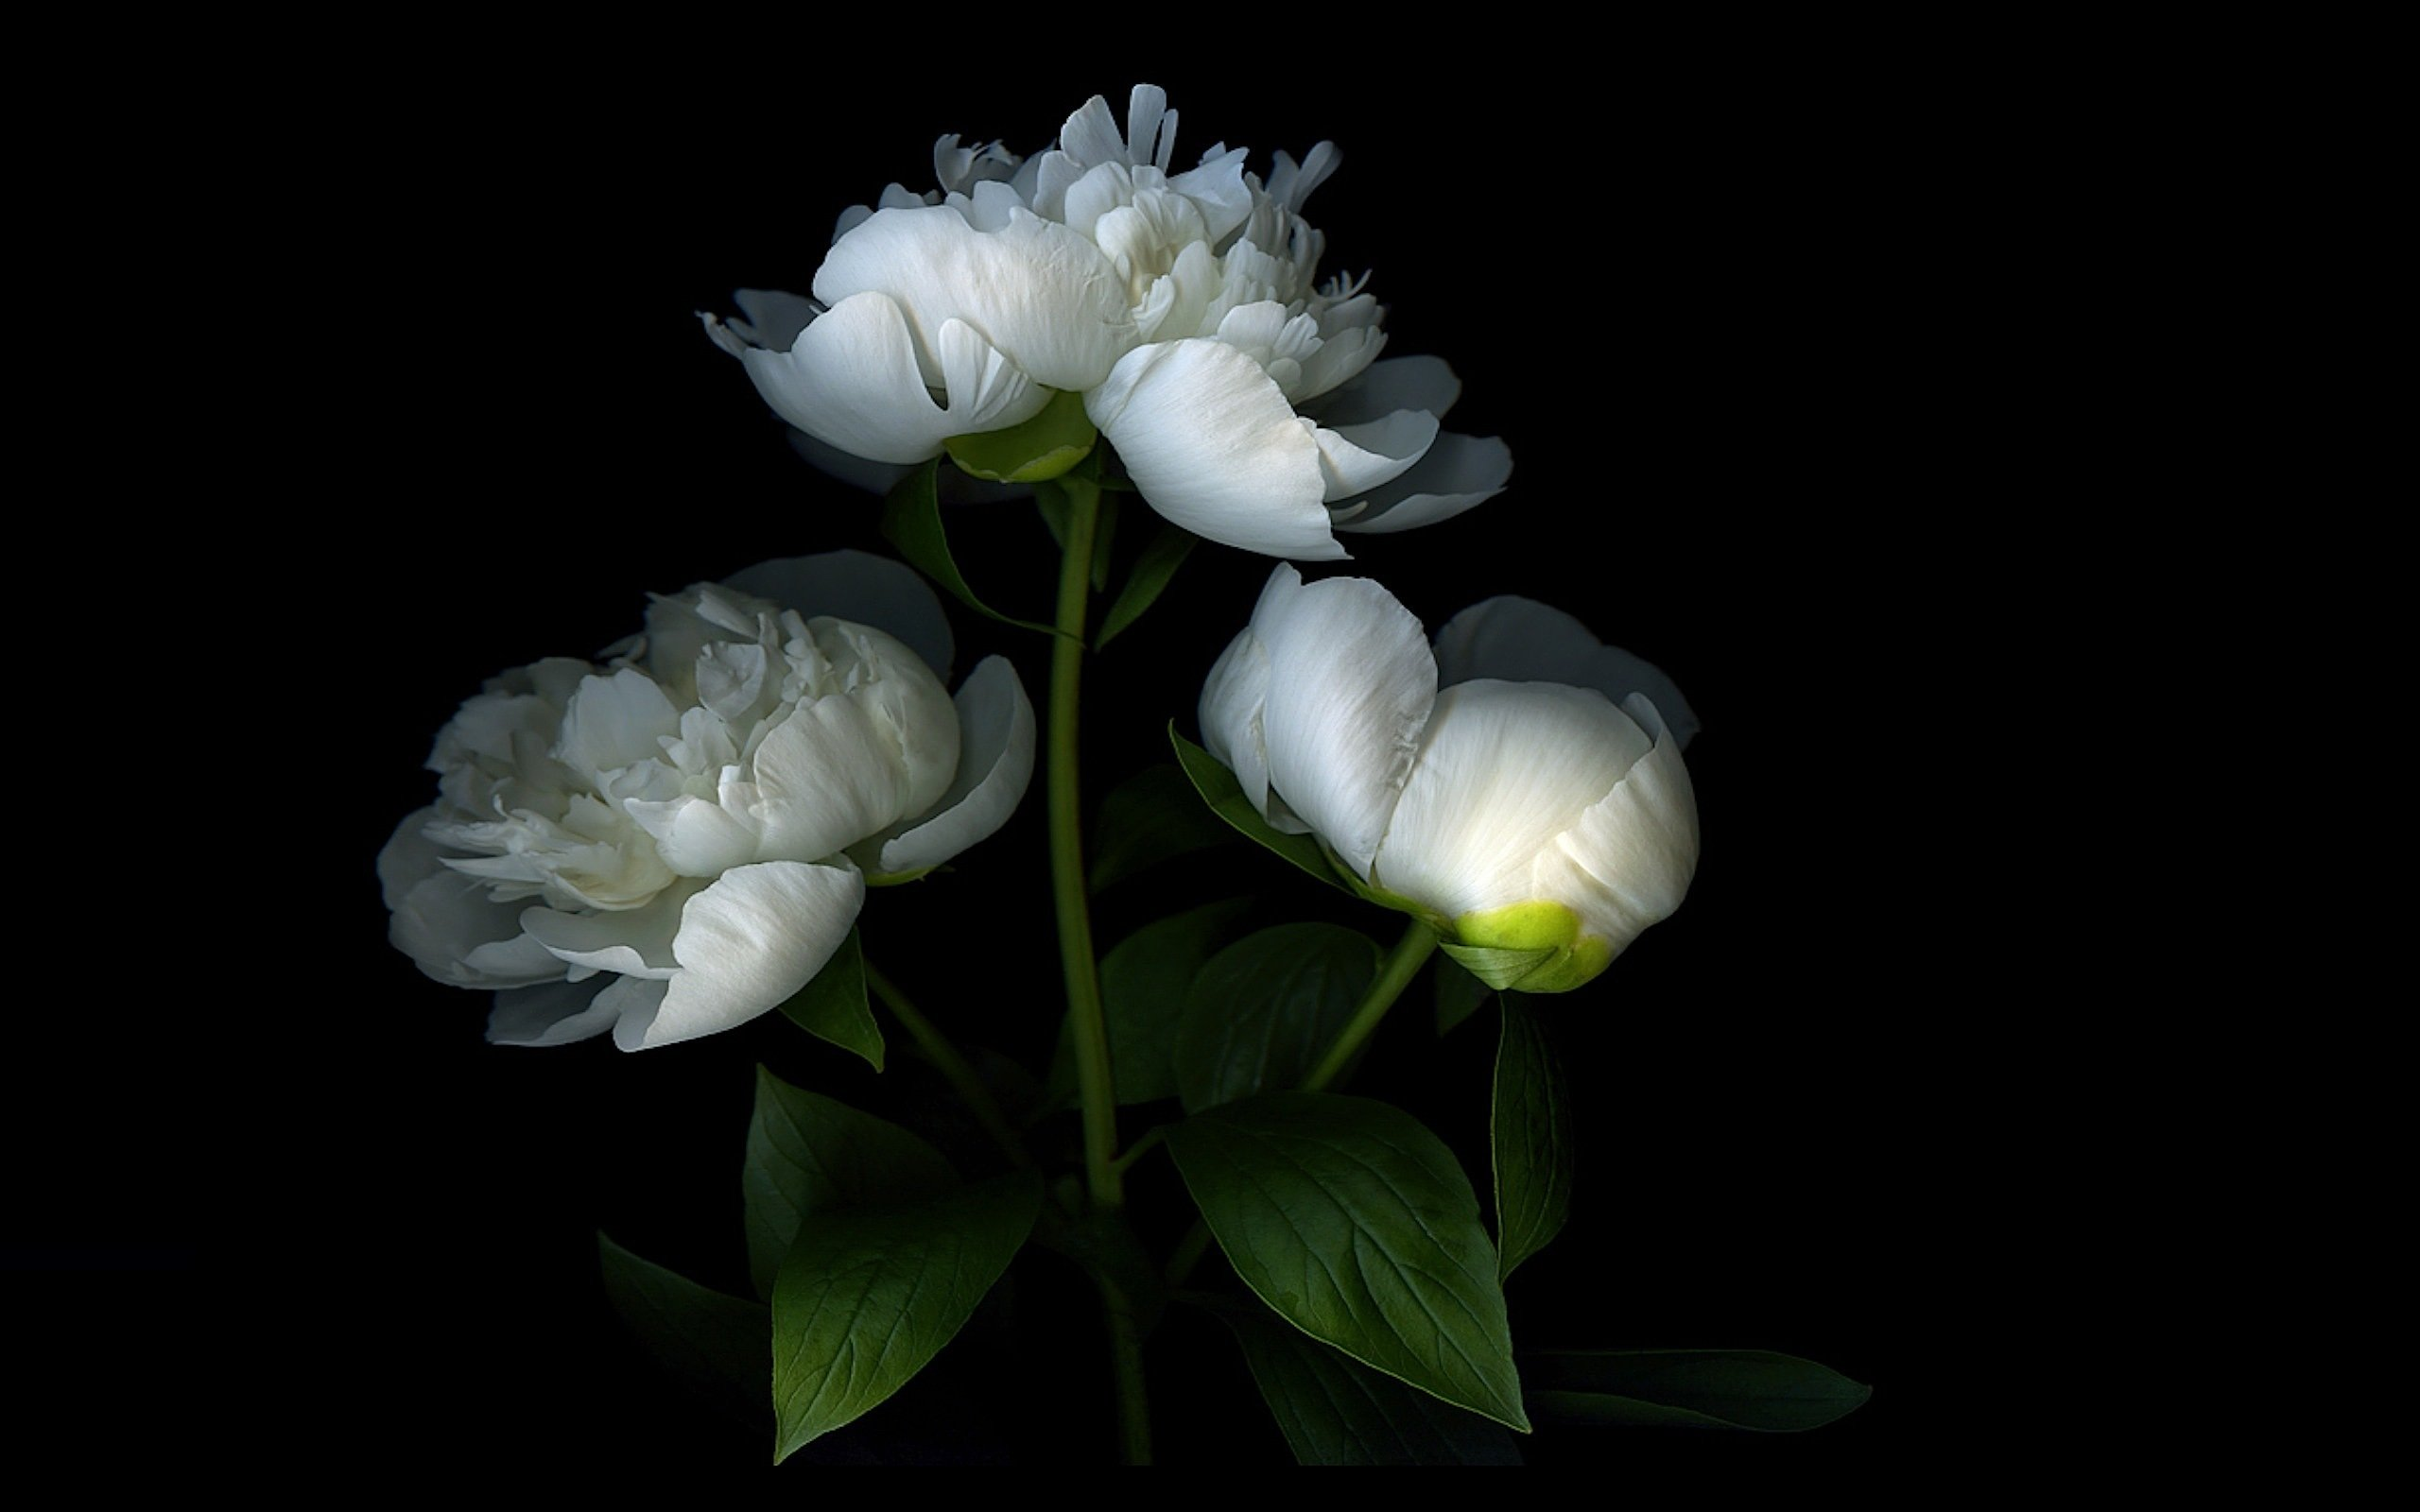 Free Peony High Quality Wallpaper Id 131519 For Hd 2560x1600 Desktop